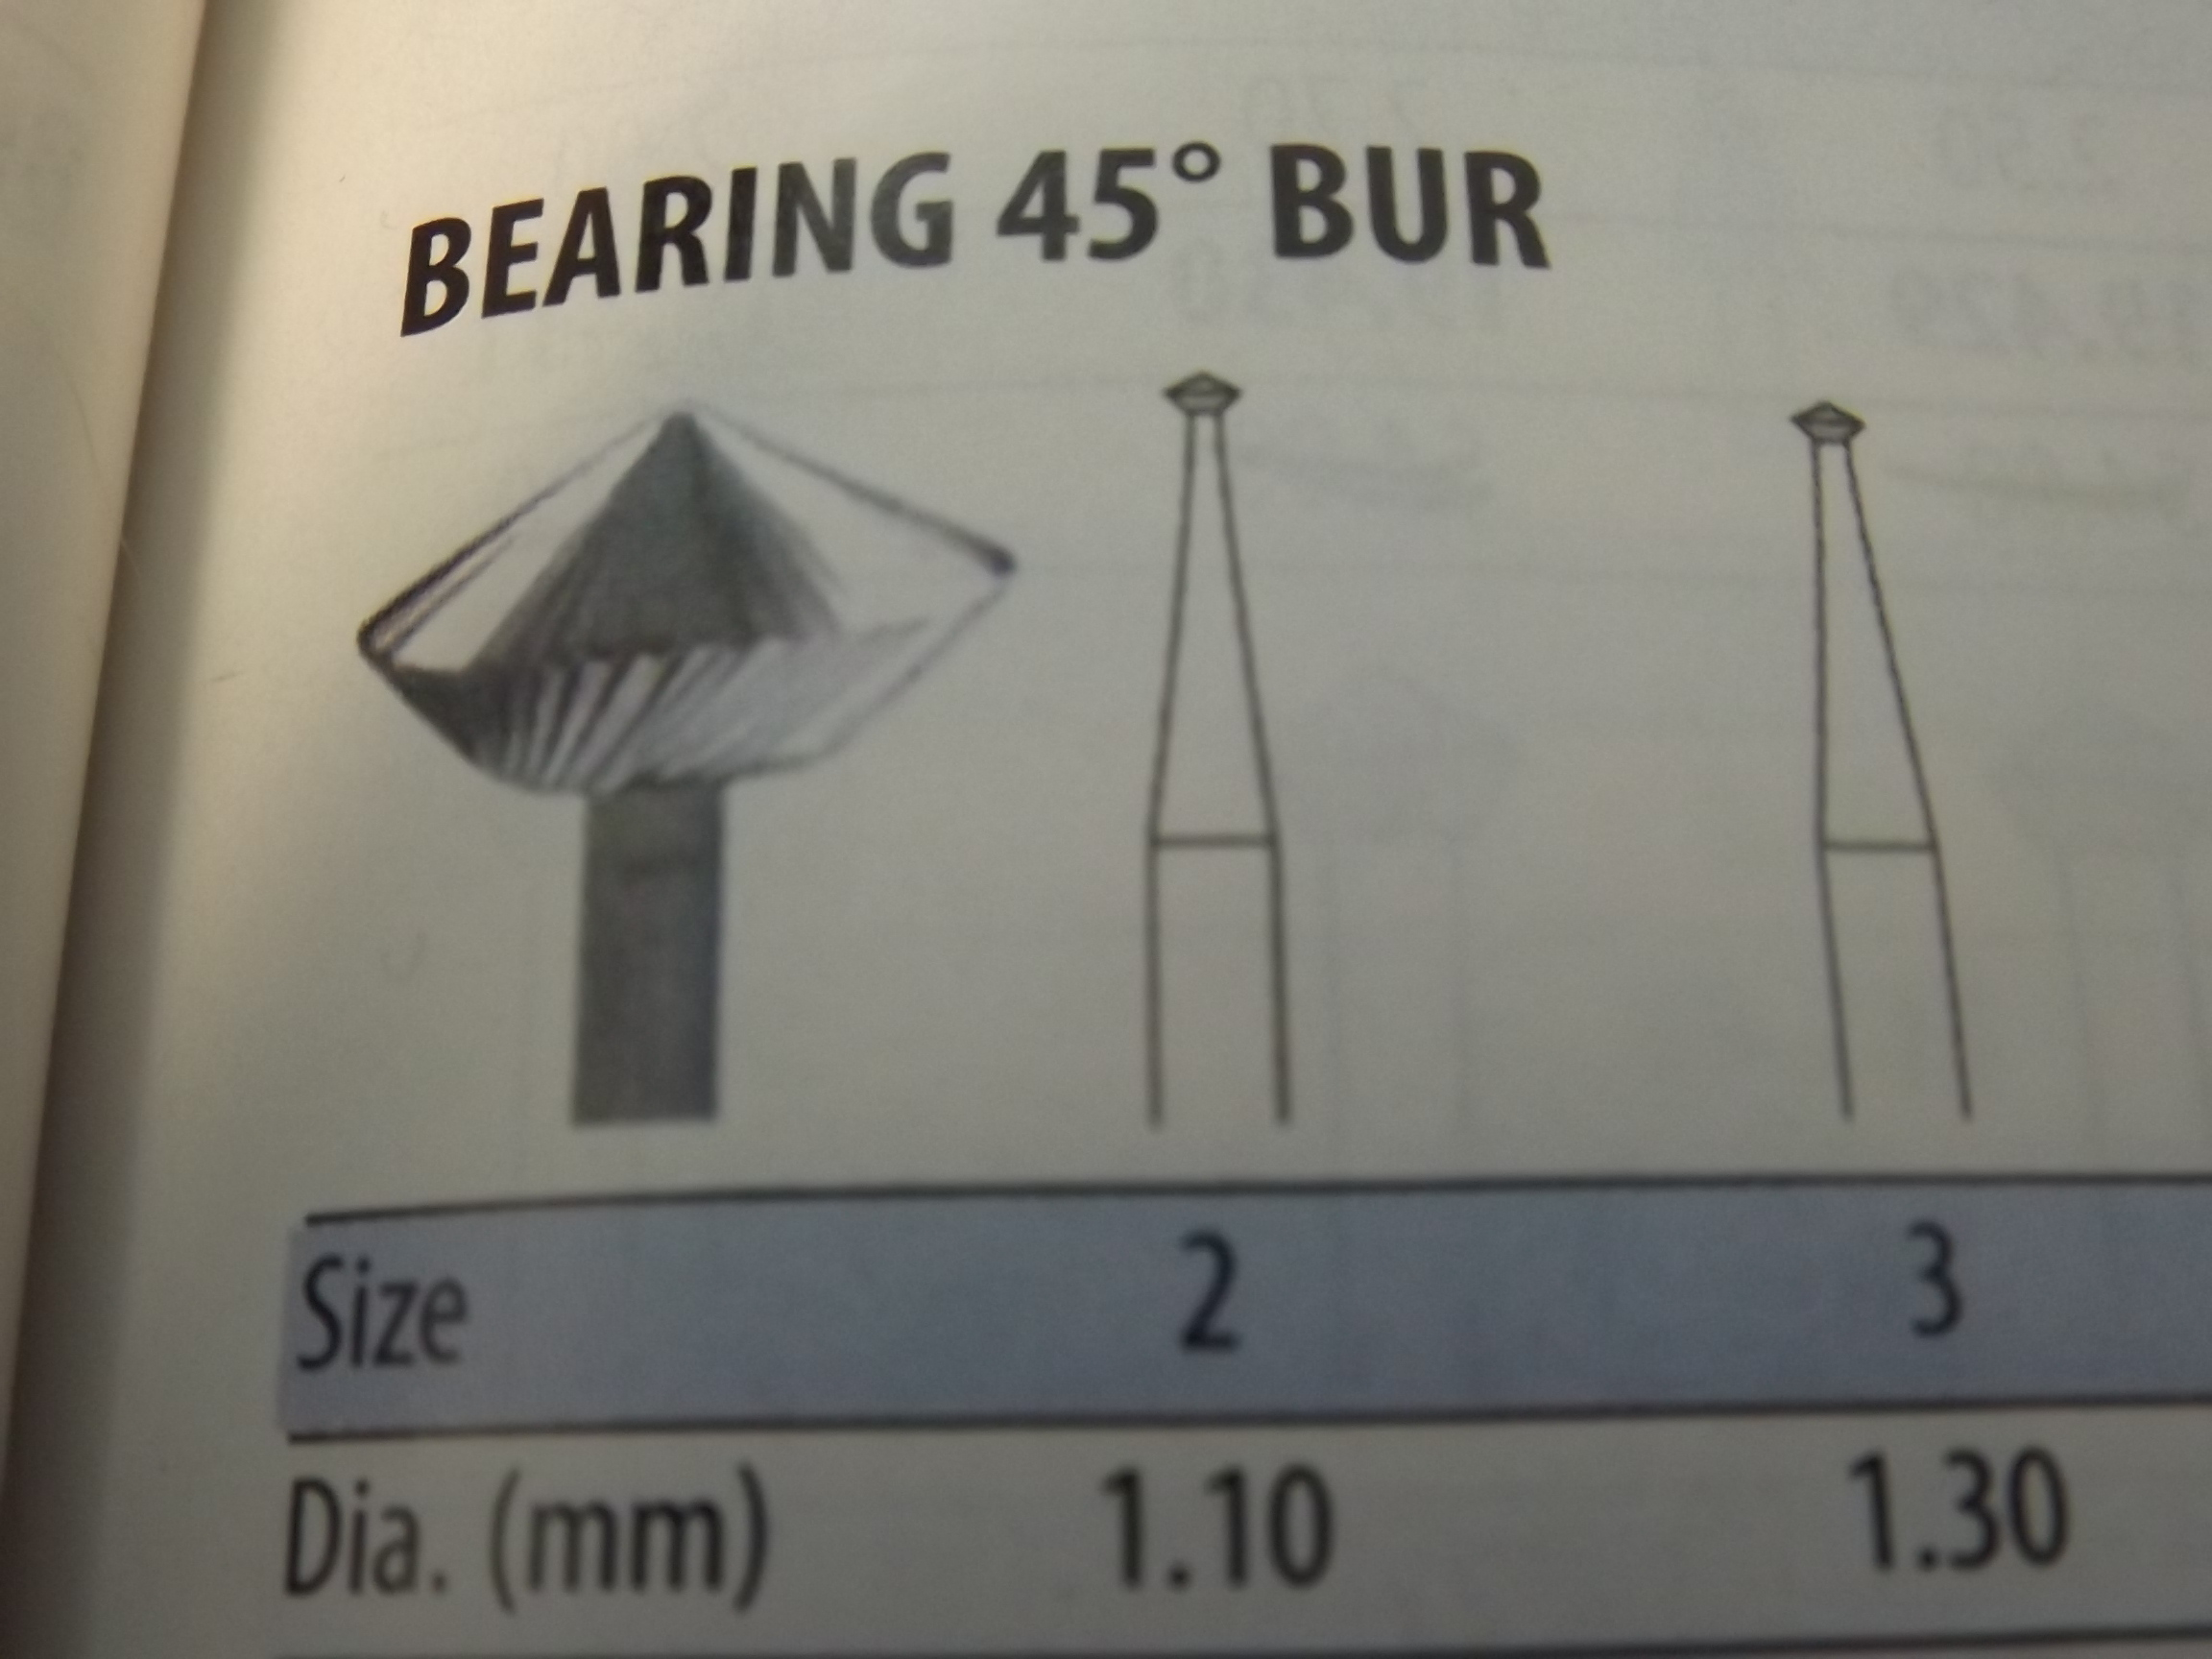 BR763/26 Hi Speed Steel 45* Bearing Burs #26--Grobet #19.406